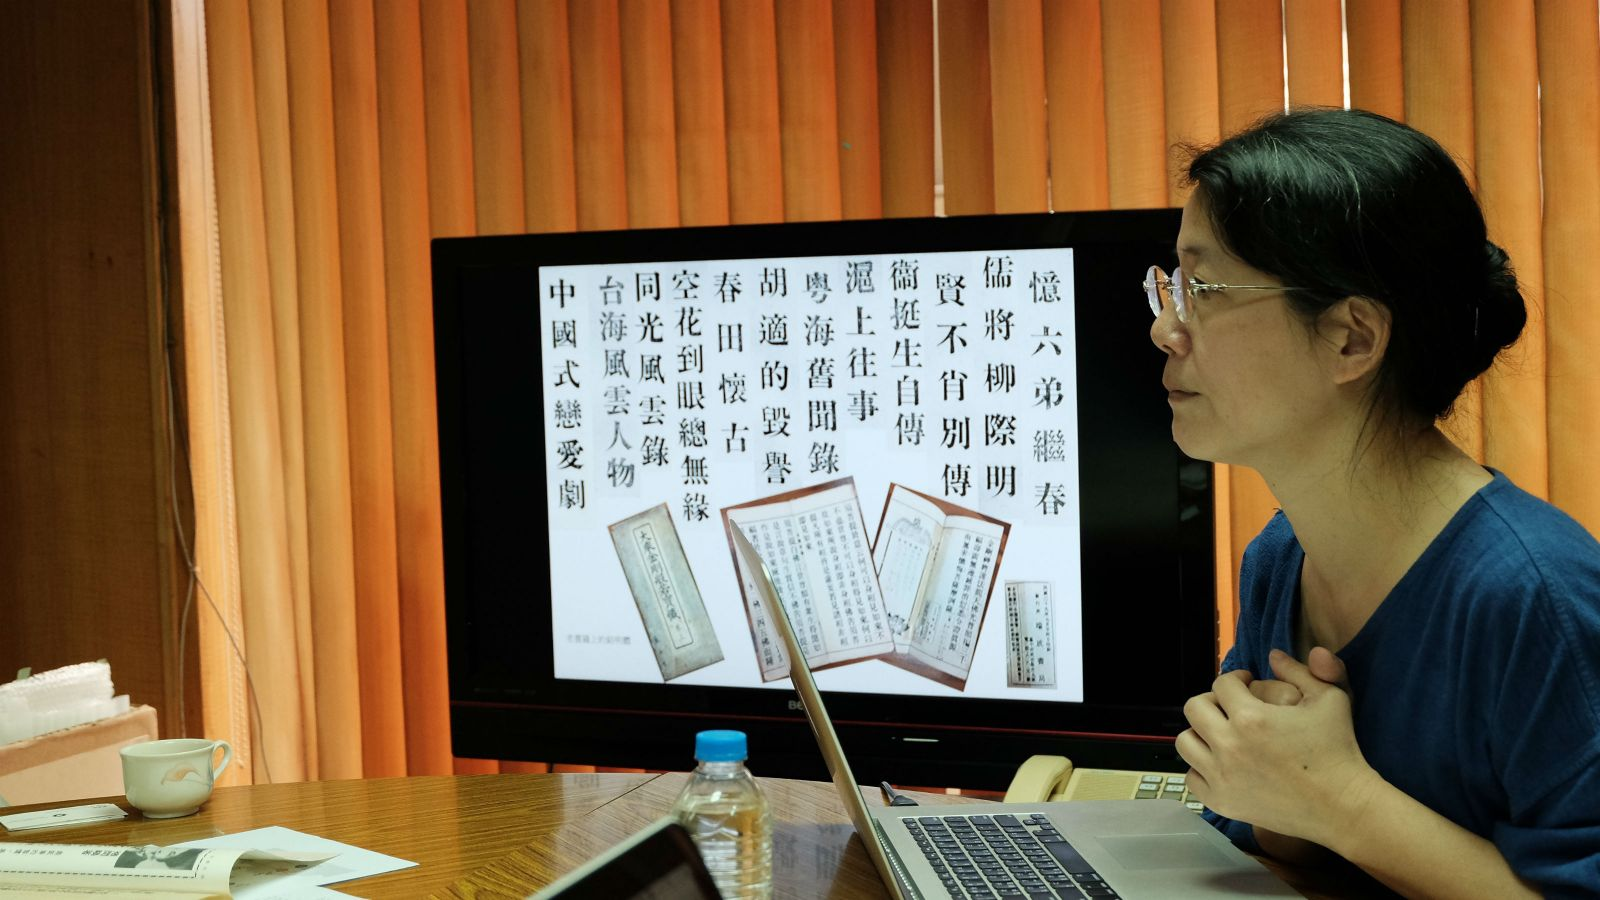 Chen Xiu-Mei (陳秀美), director of A Zhi-Bao studio (阿之寶) presents her findings on Taiwanese metal typefaces